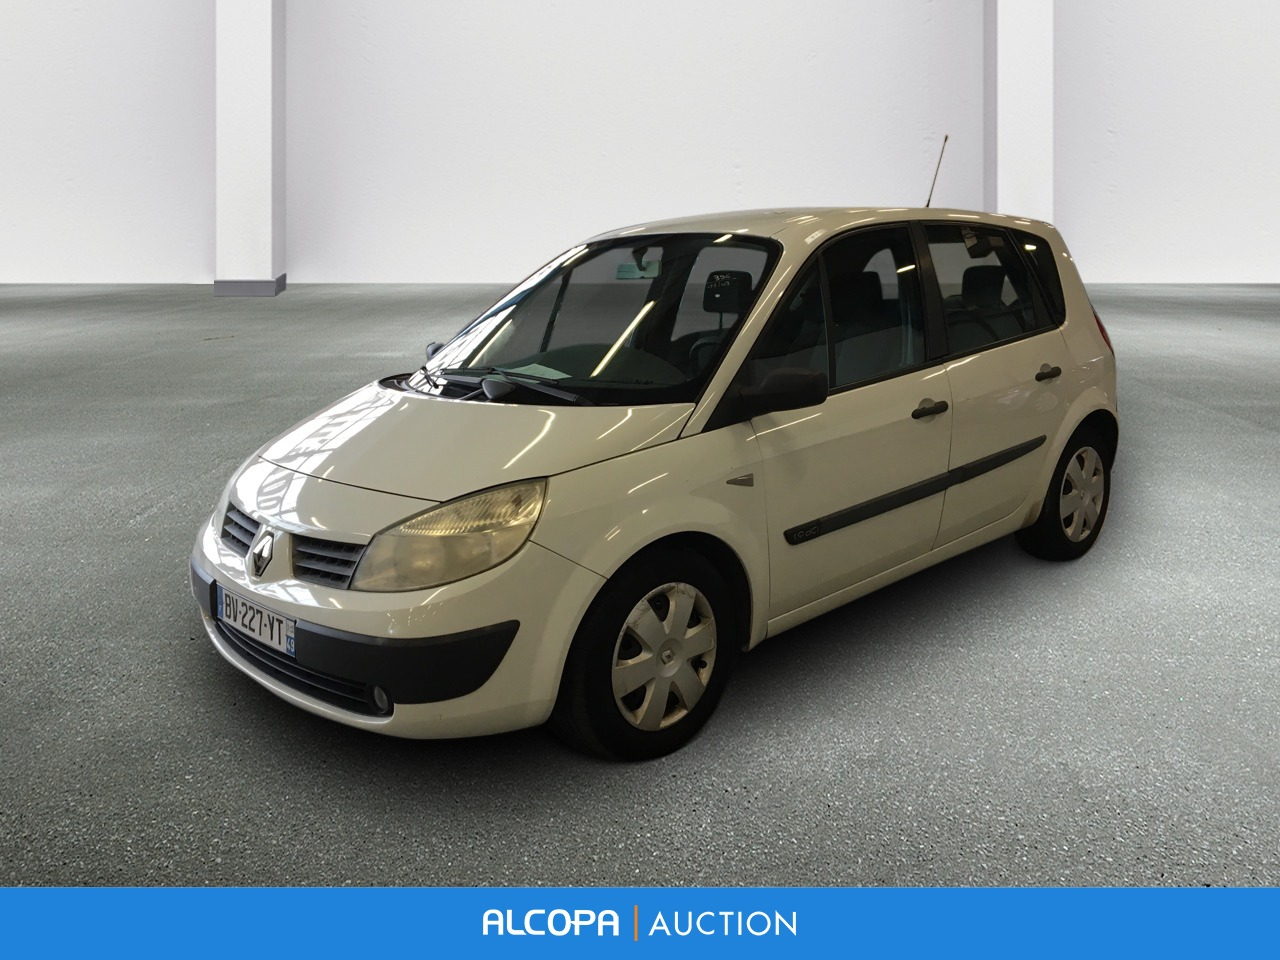 renault scenic ii scenic 1 9 dci 120 pack expression alcopa auction. Black Bedroom Furniture Sets. Home Design Ideas